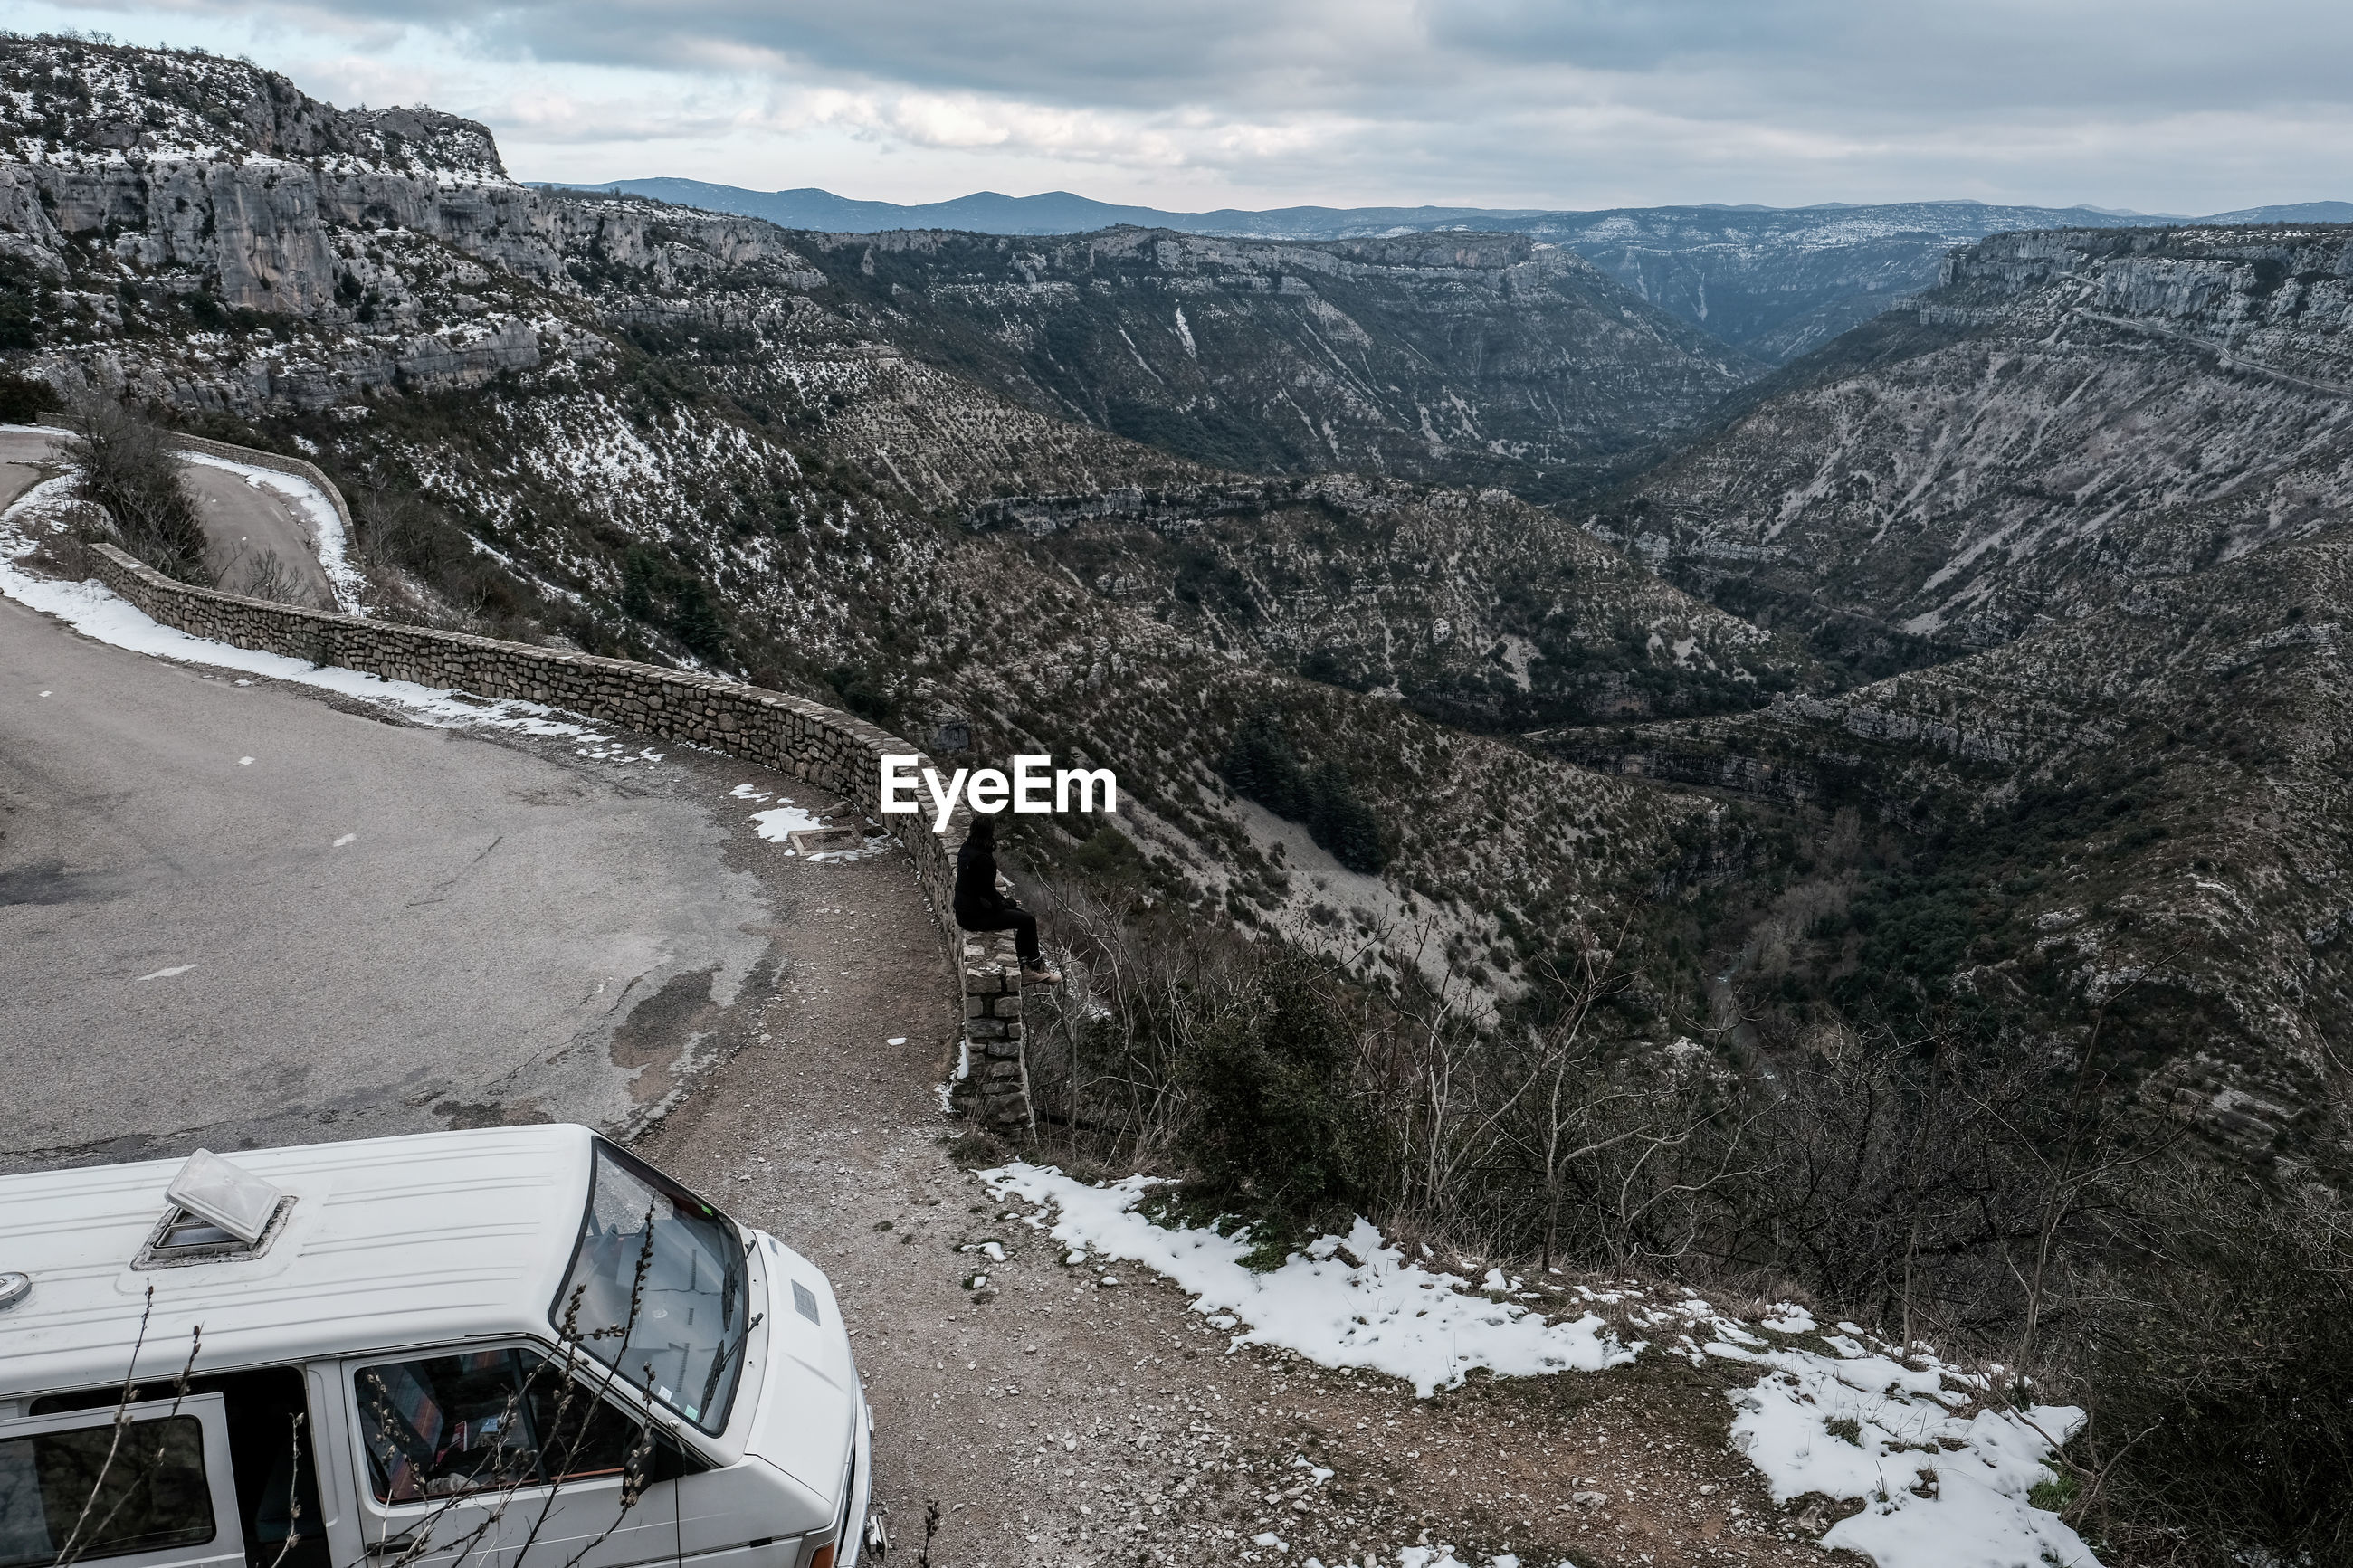 mountain, scenics - nature, beauty in nature, cold temperature, winter, snow, nature, transportation, environment, mountain range, day, non-urban scene, no people, road, tranquil scene, landscape, tranquility, mode of transportation, high angle view, outdoors, snowcapped mountain, formation